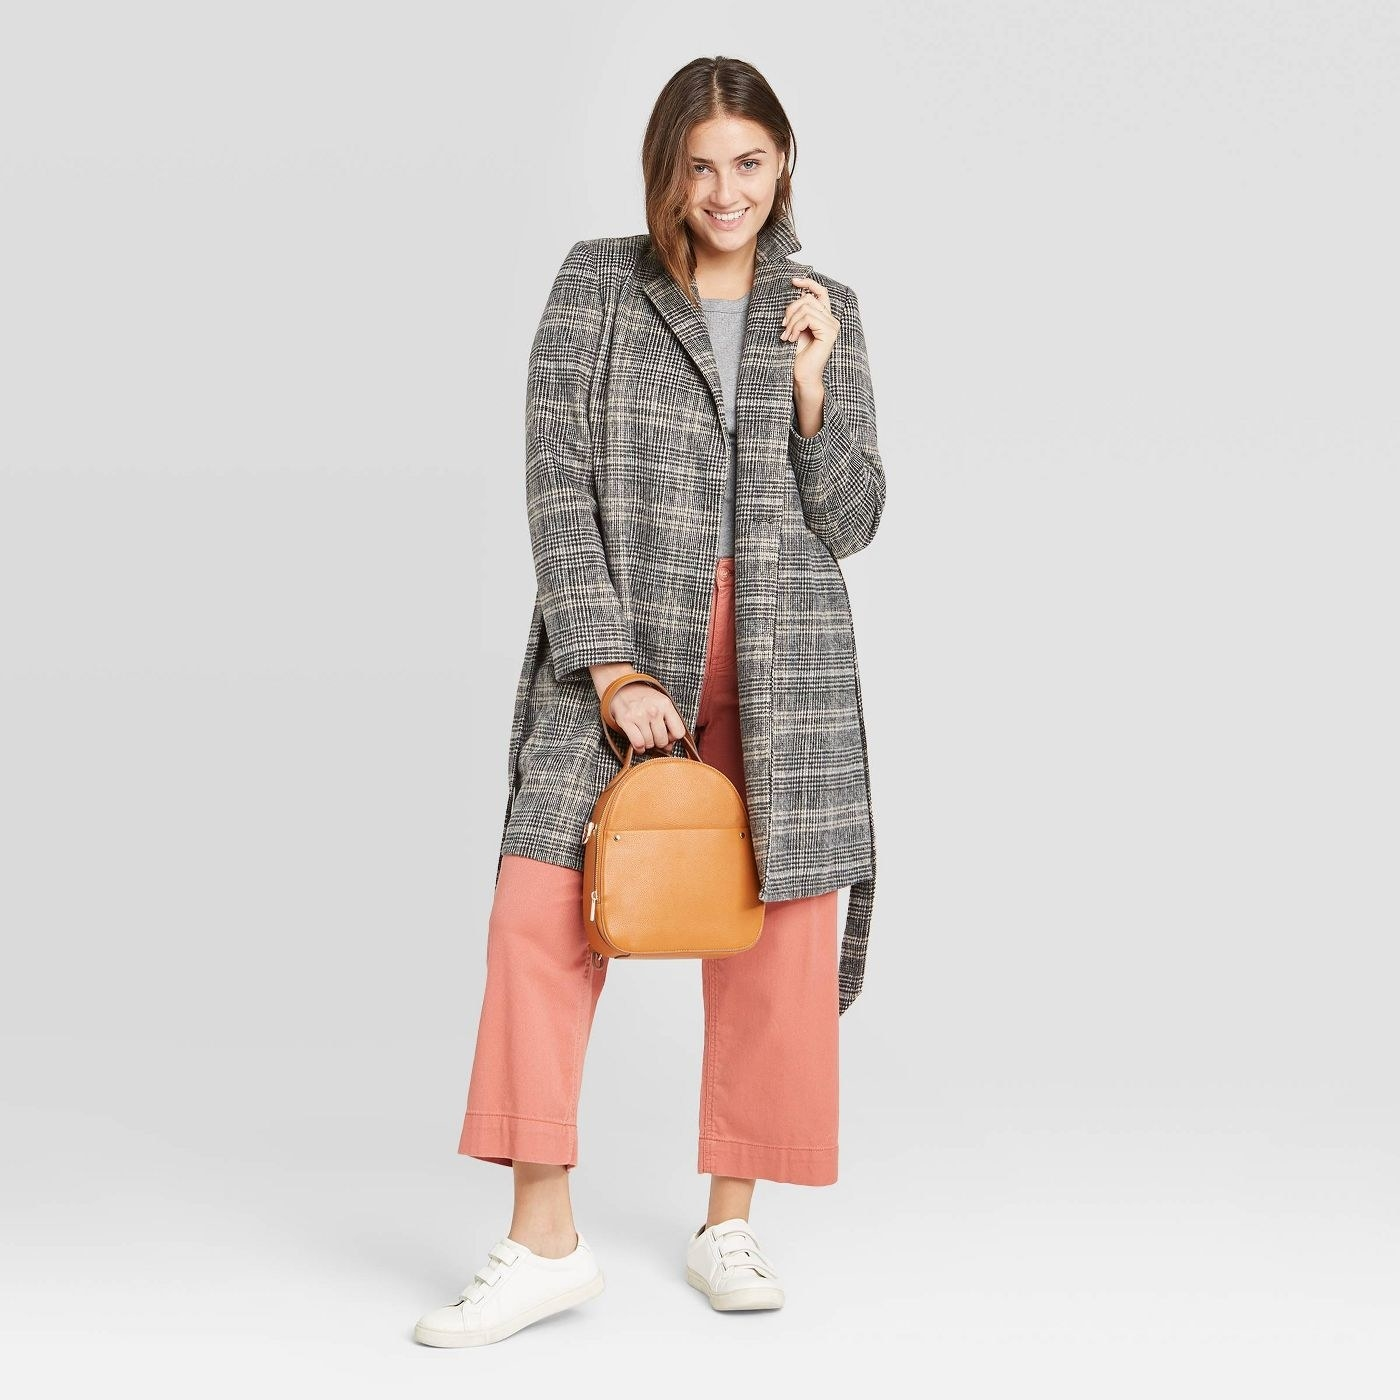 Model wear plaid overcoat with salmon pants and white sneakers